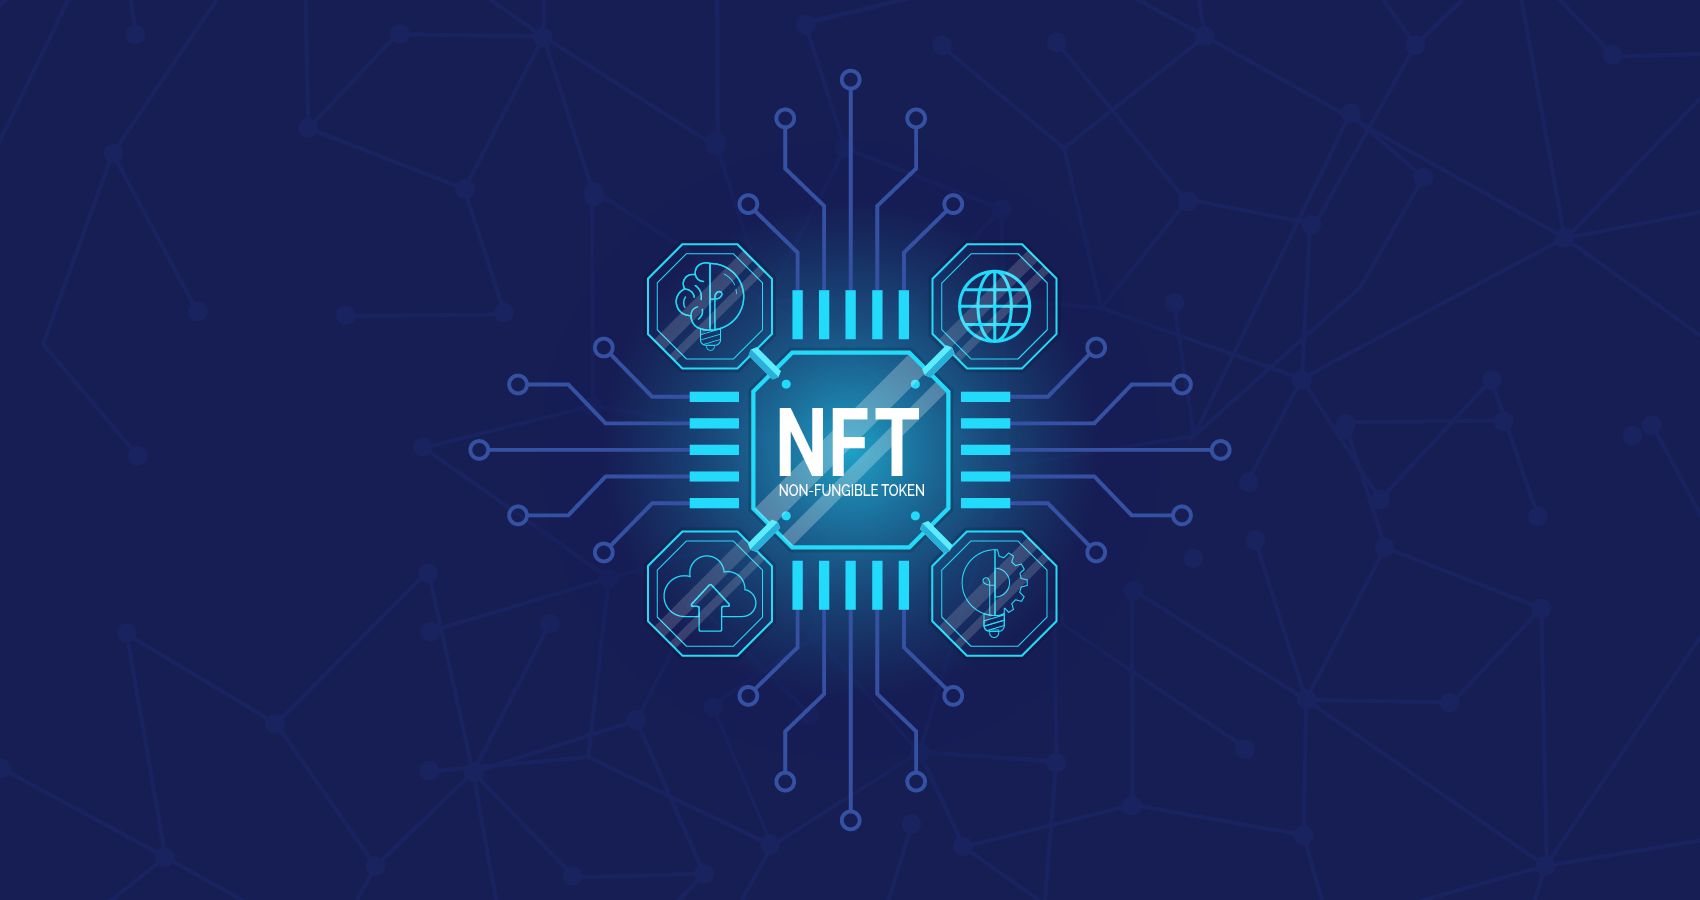 All about NFT